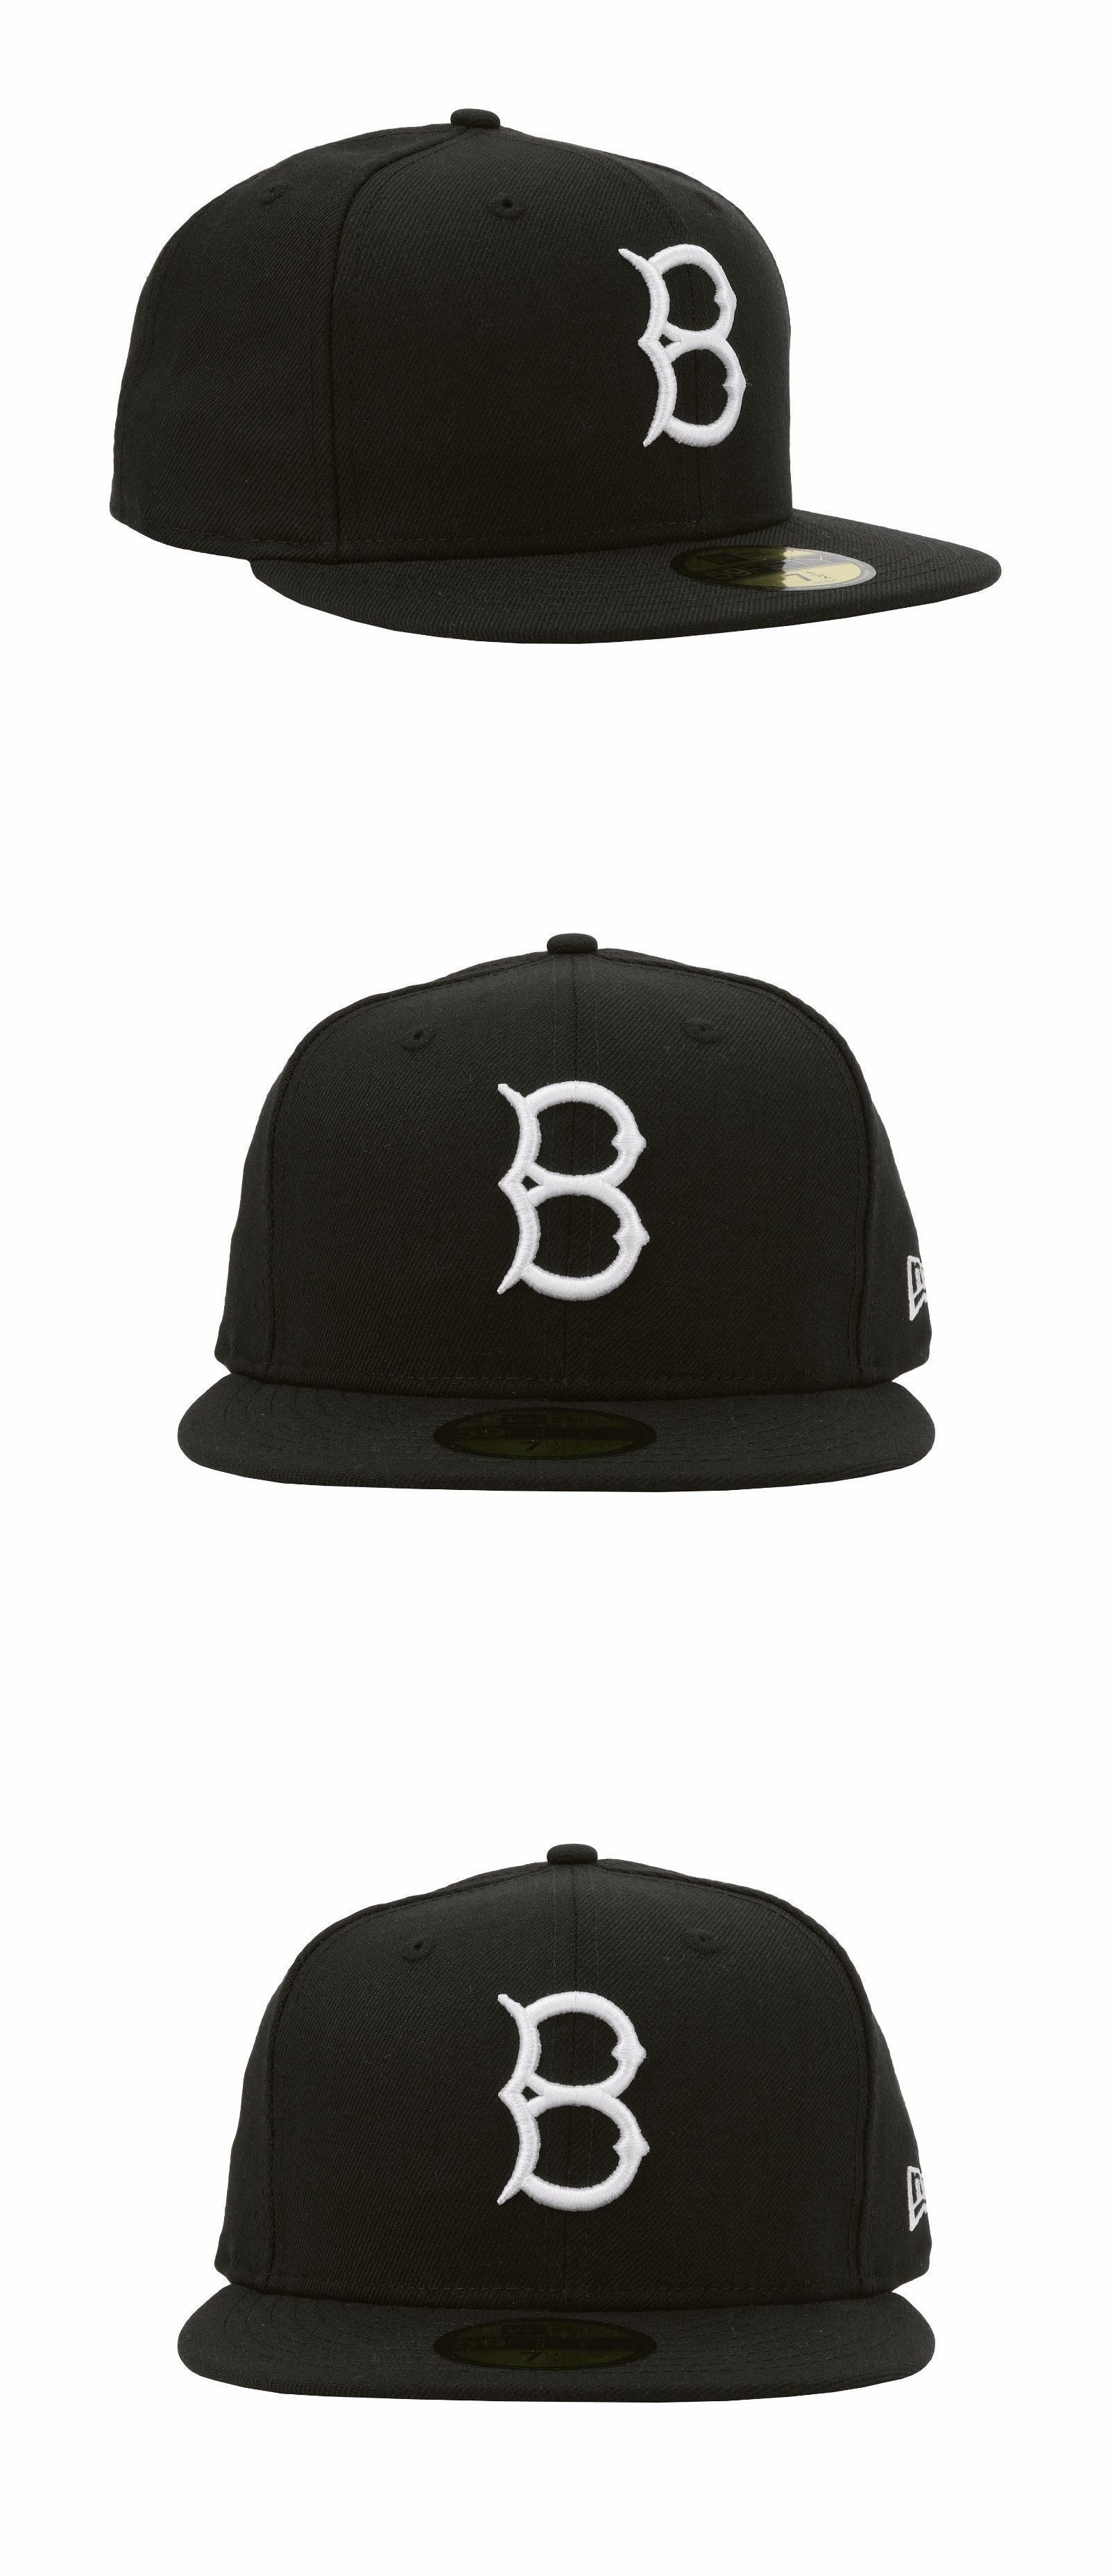 ... coupon code for hats 52365 new era brooklyn dodgers throwback cap  fitted 5950 black white mlb 1666570de00